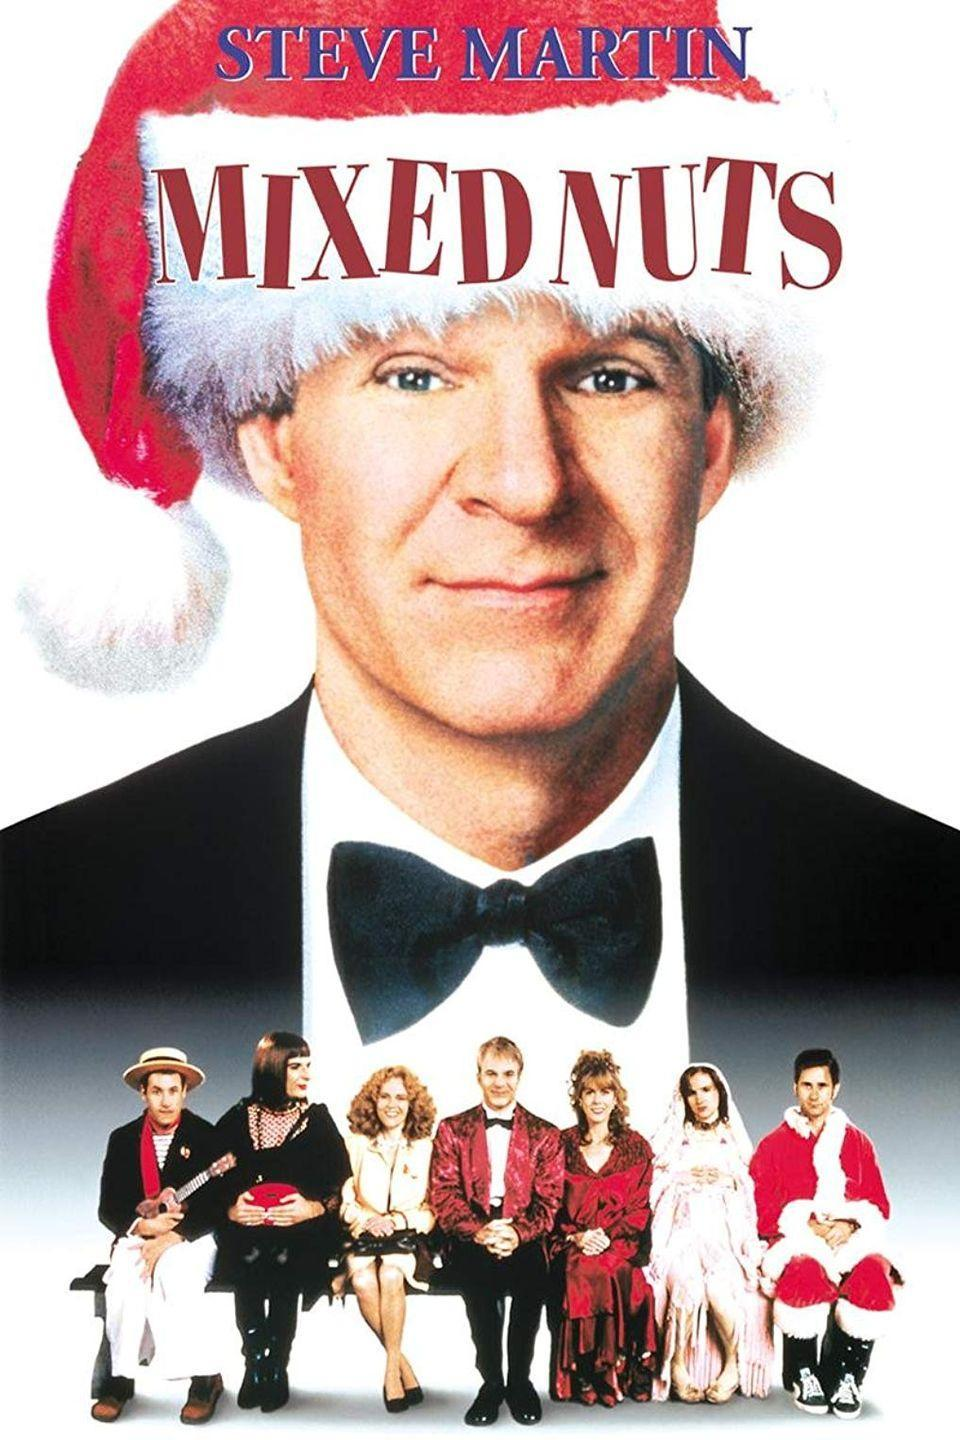 """<p>This 1994 Nora Ephron dramedy stars Steve Martin as the director of a crisis hotline on Christmas Eve.</p><p><strong><a class=""""link rapid-noclick-resp"""" href=""""https://www.amazon.com/Mixed-Nuts-Caroline-Aaron/dp/B0094LSSZU/?tag=syn-yahoo-20&ascsubtag=%5Bartid%7C10055.g.1315%5Bsrc%7Cyahoo-us"""" rel=""""nofollow noopener"""" target=""""_blank"""" data-ylk=""""slk:WATCH NOW"""">WATCH NOW</a></strong></p>"""